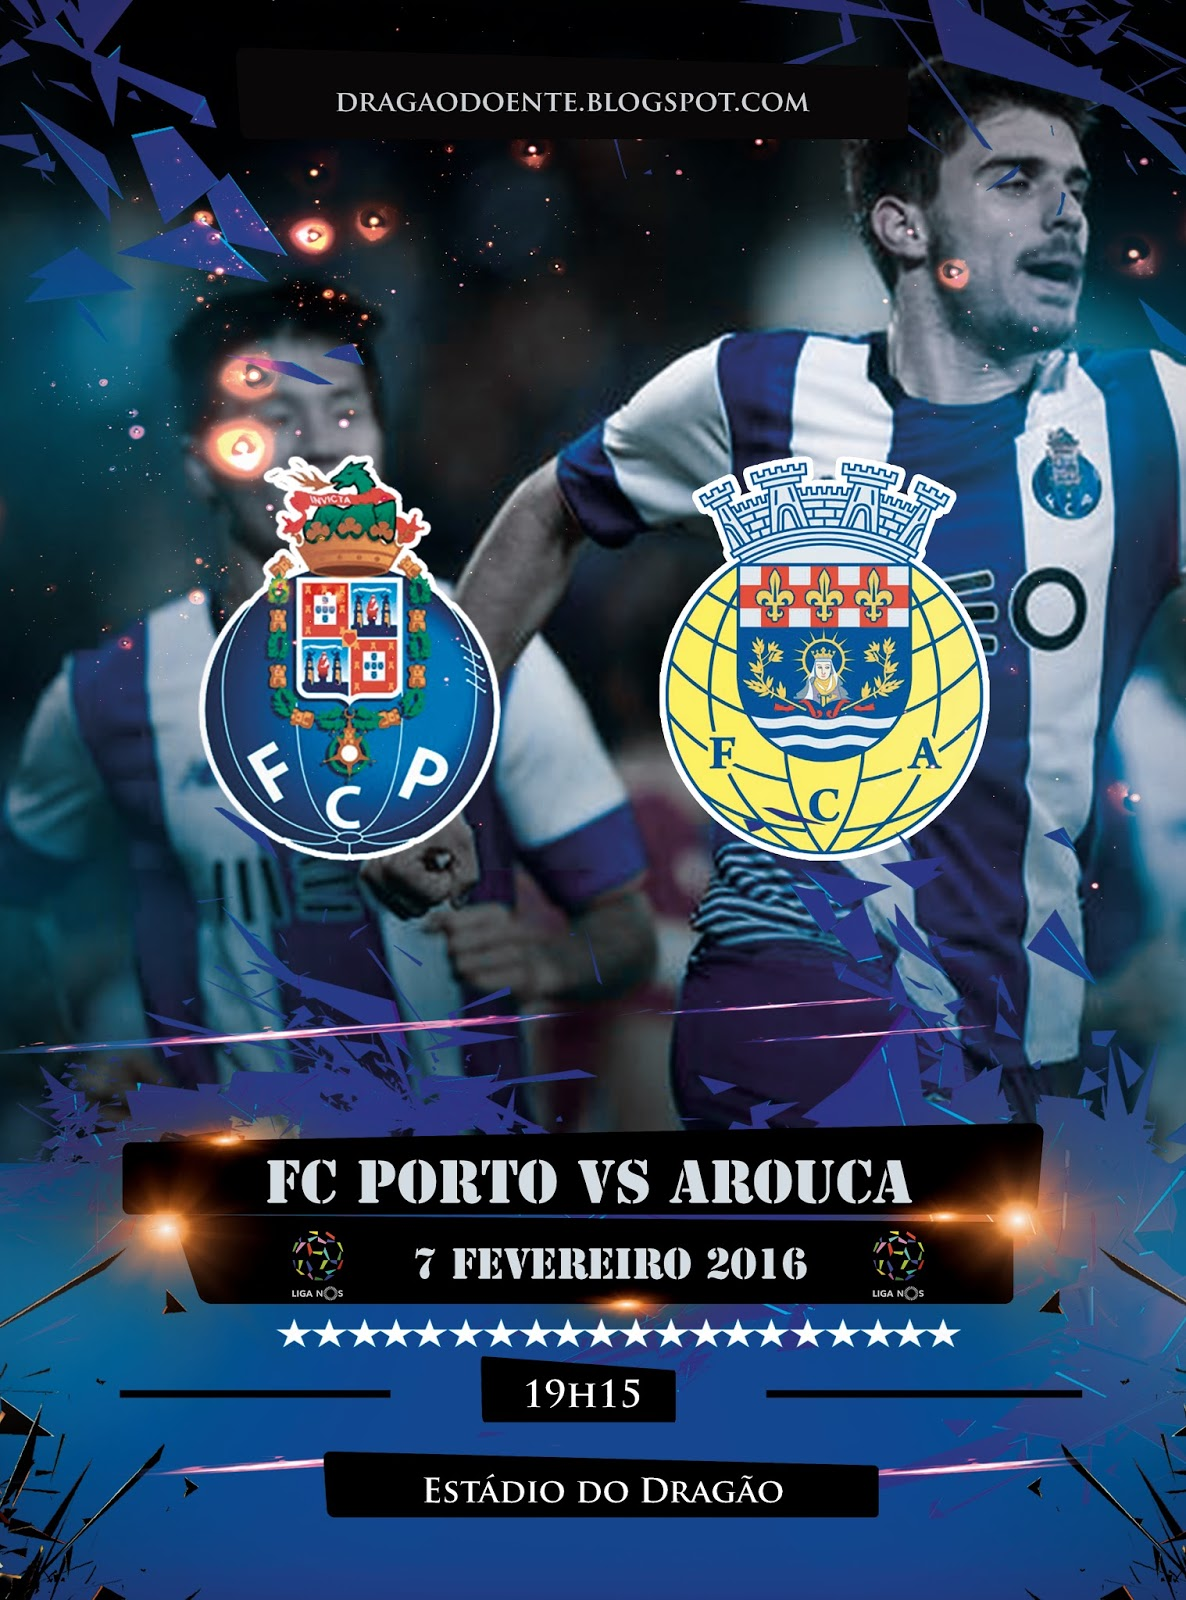 Arouca vs porto resumo